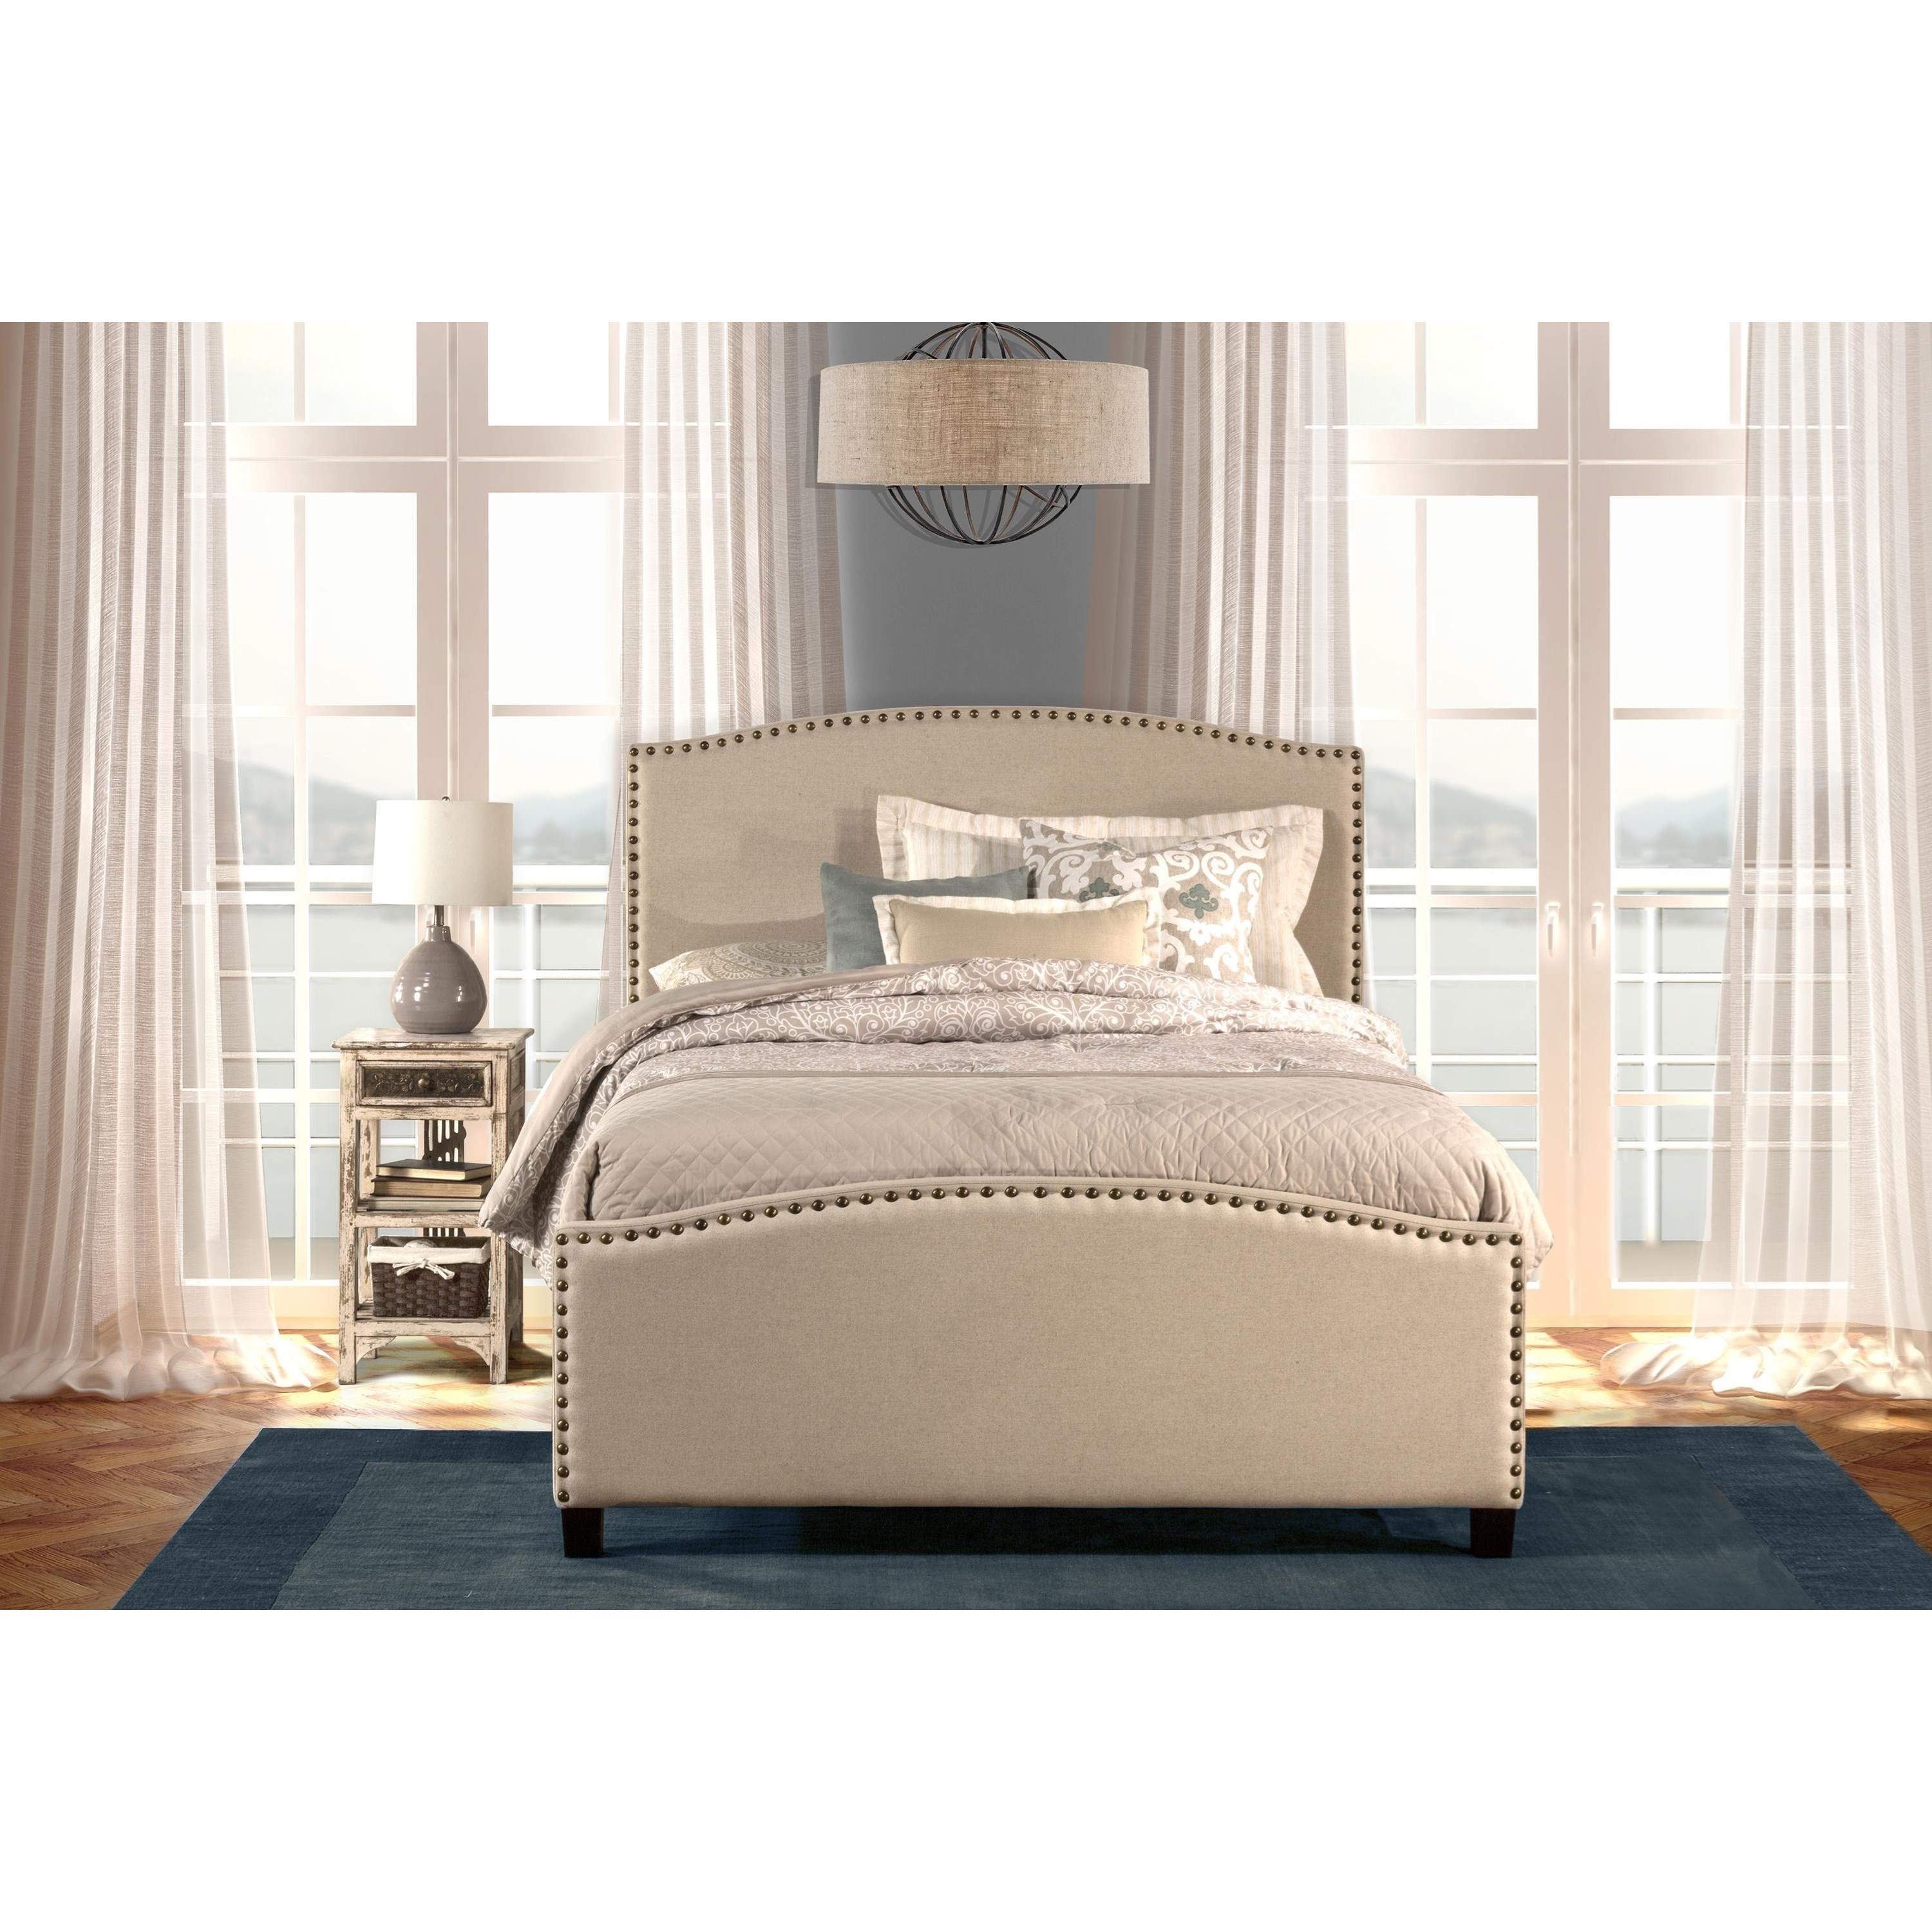 queen bed set with rails included and nail head trim by hillsdale wolf and gardiner wolf furniture. Black Bedroom Furniture Sets. Home Design Ideas